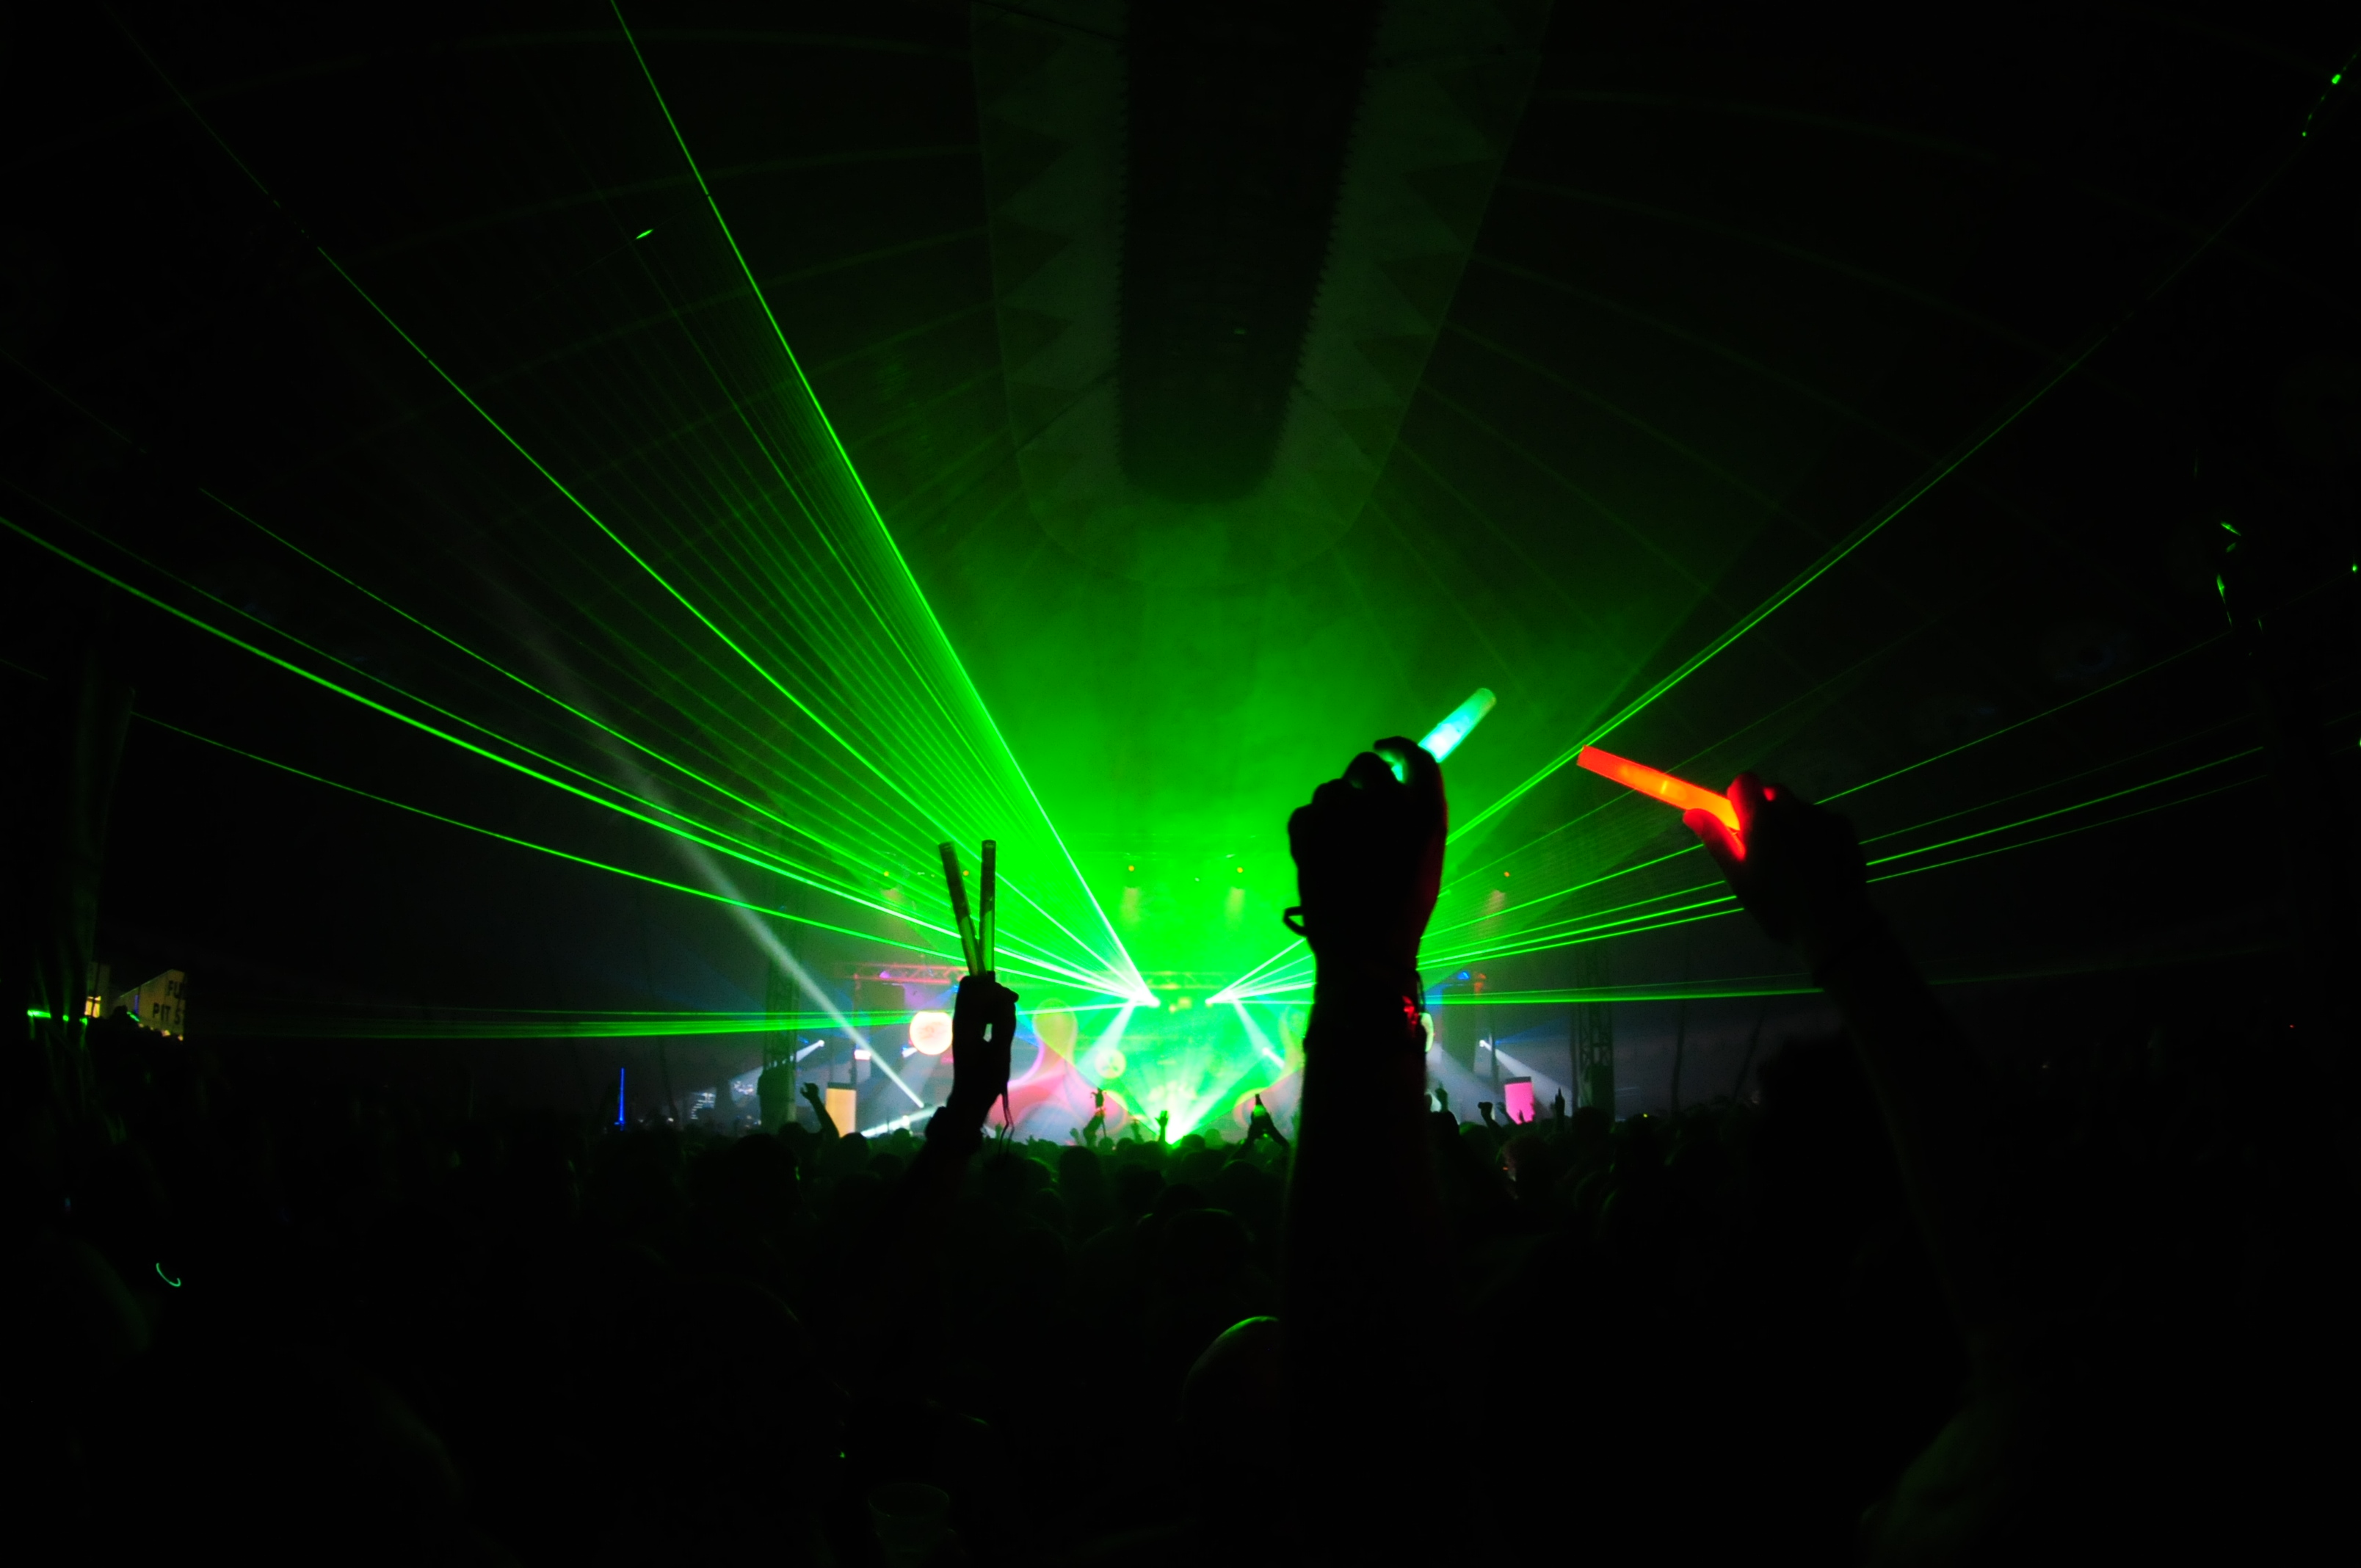 Feeling the music - techno style,